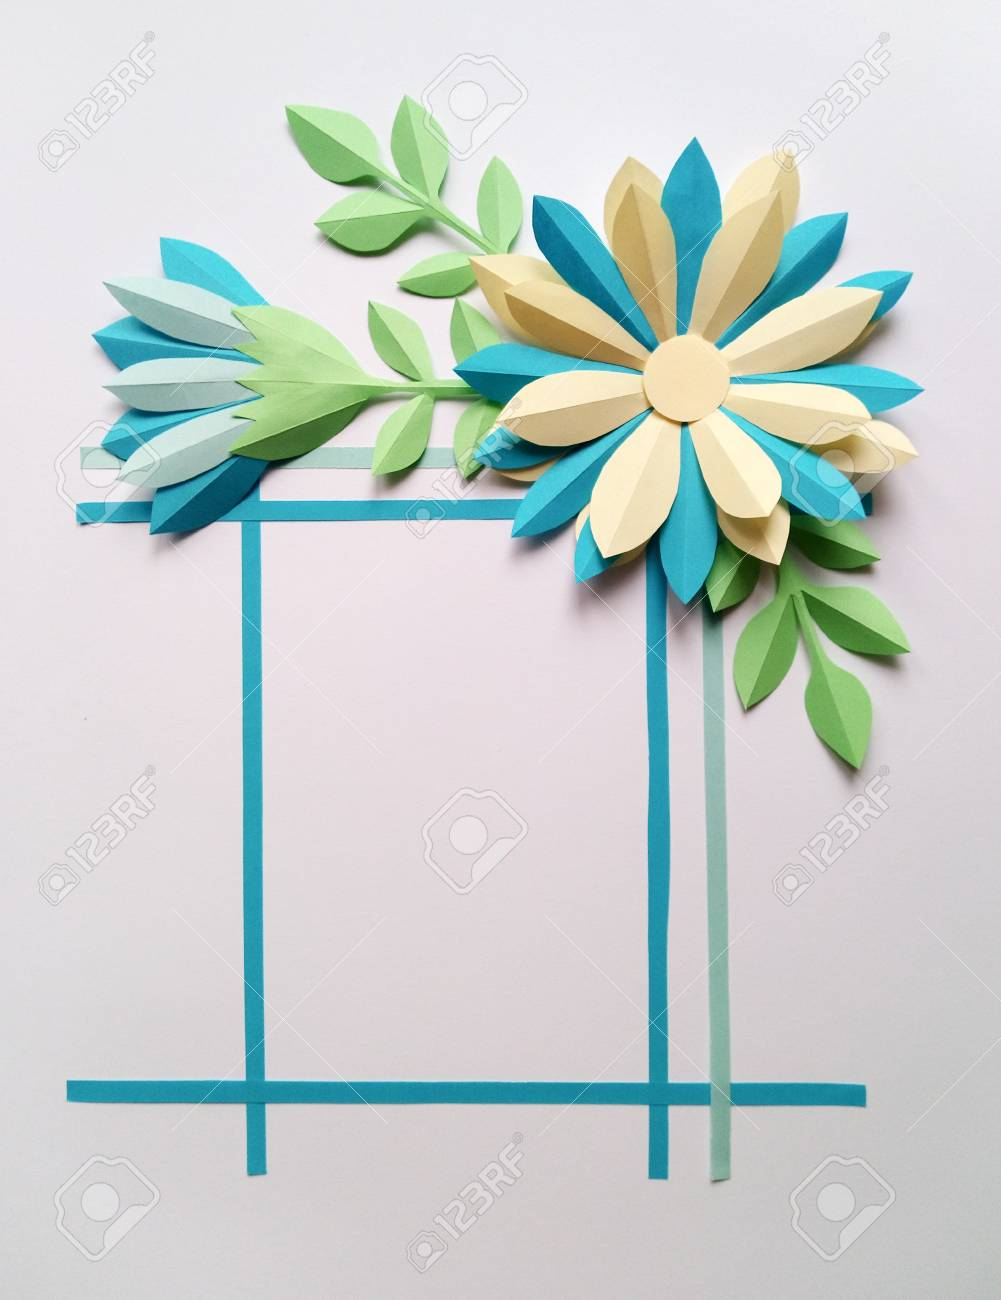 Square Frame With Blue Color Paper Flowers Nature Floral Concept